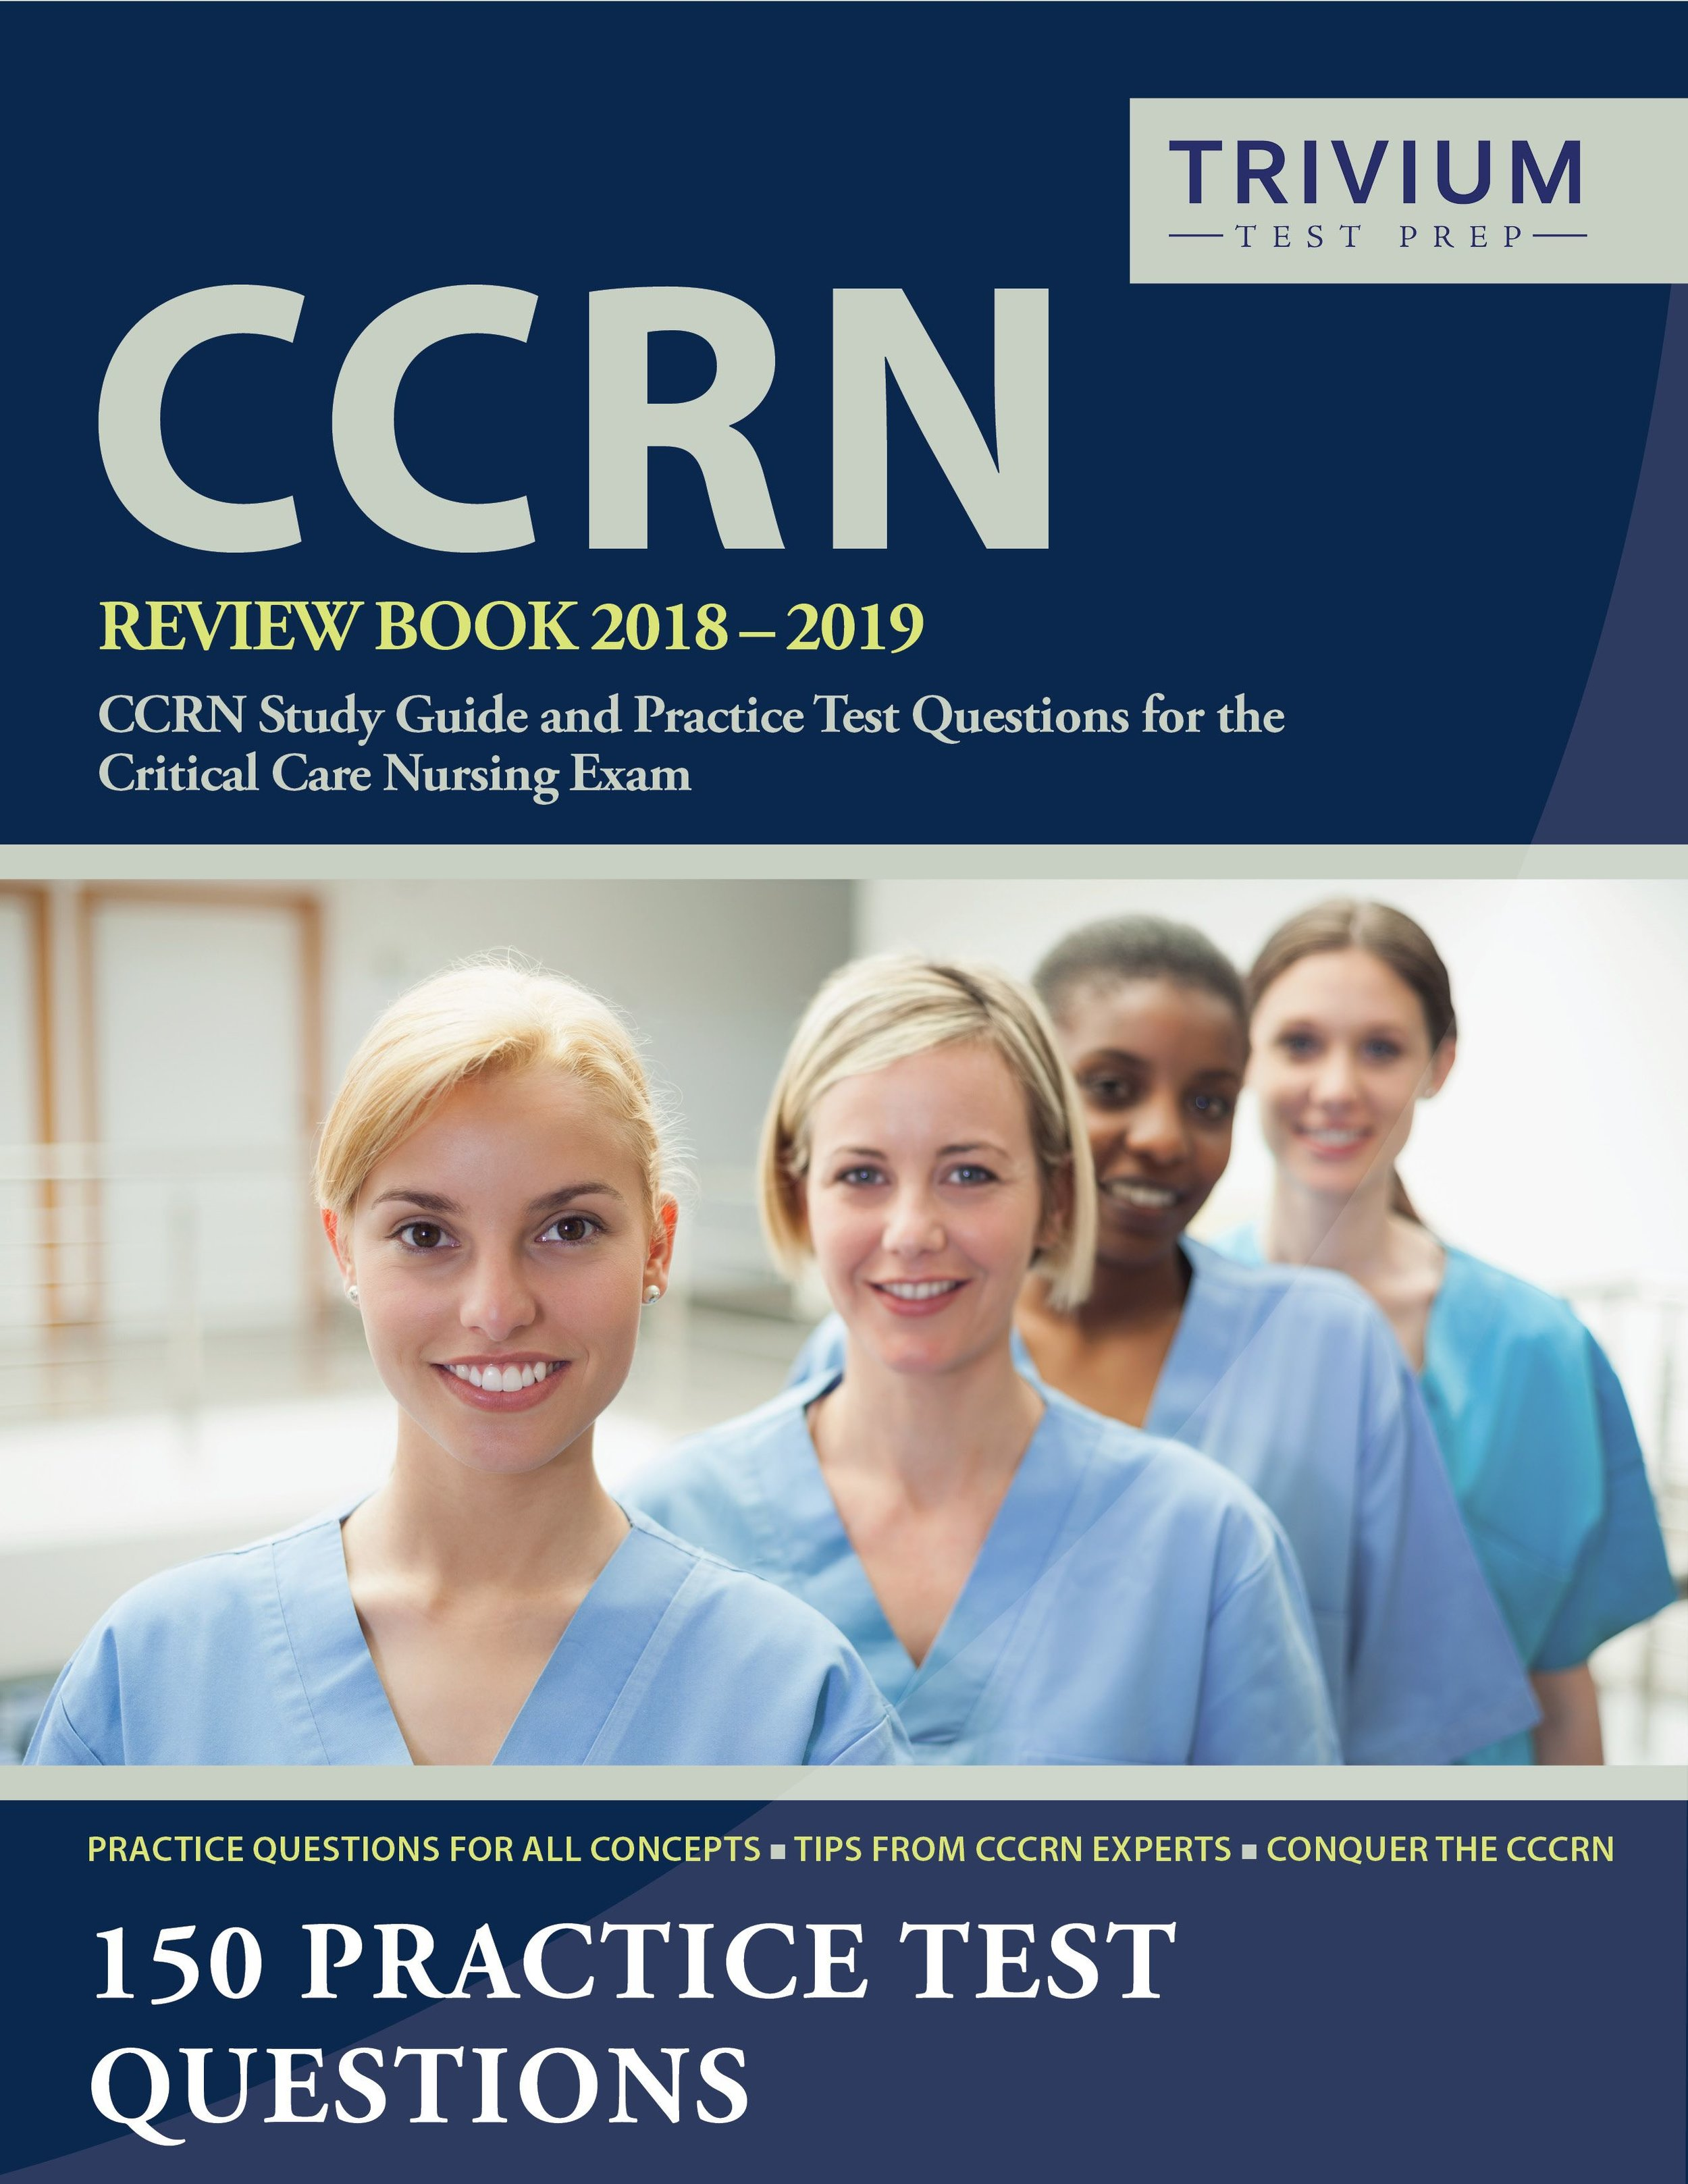 CCRN Review 2018-2019